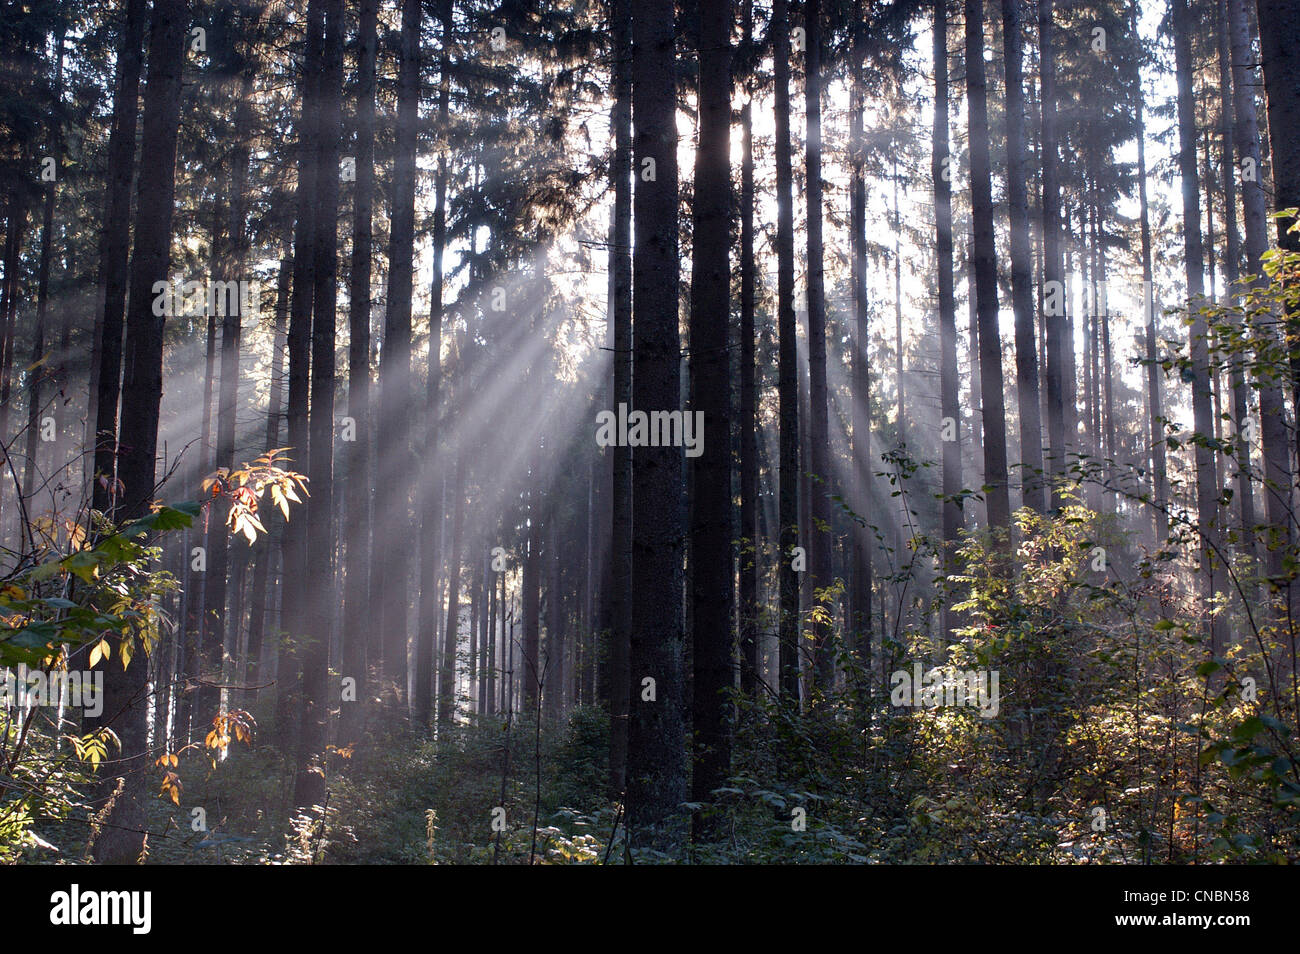 Rays of sunlight shining between trees in a forest - Stock Image